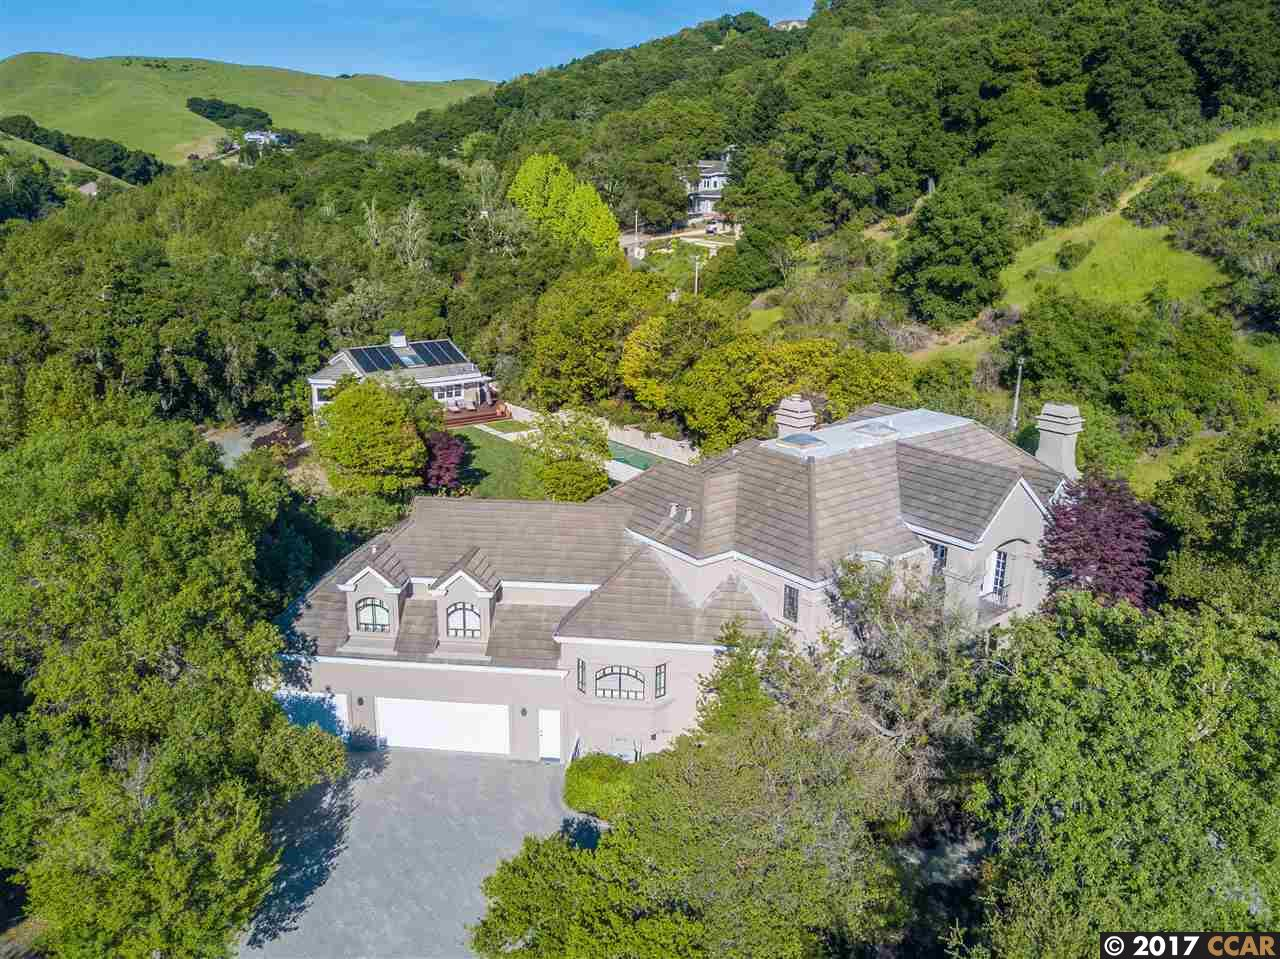 Maison unifamiliale pour l Vente à 21 Merrill Circle South Moraga, Californie 94556 États-Unis